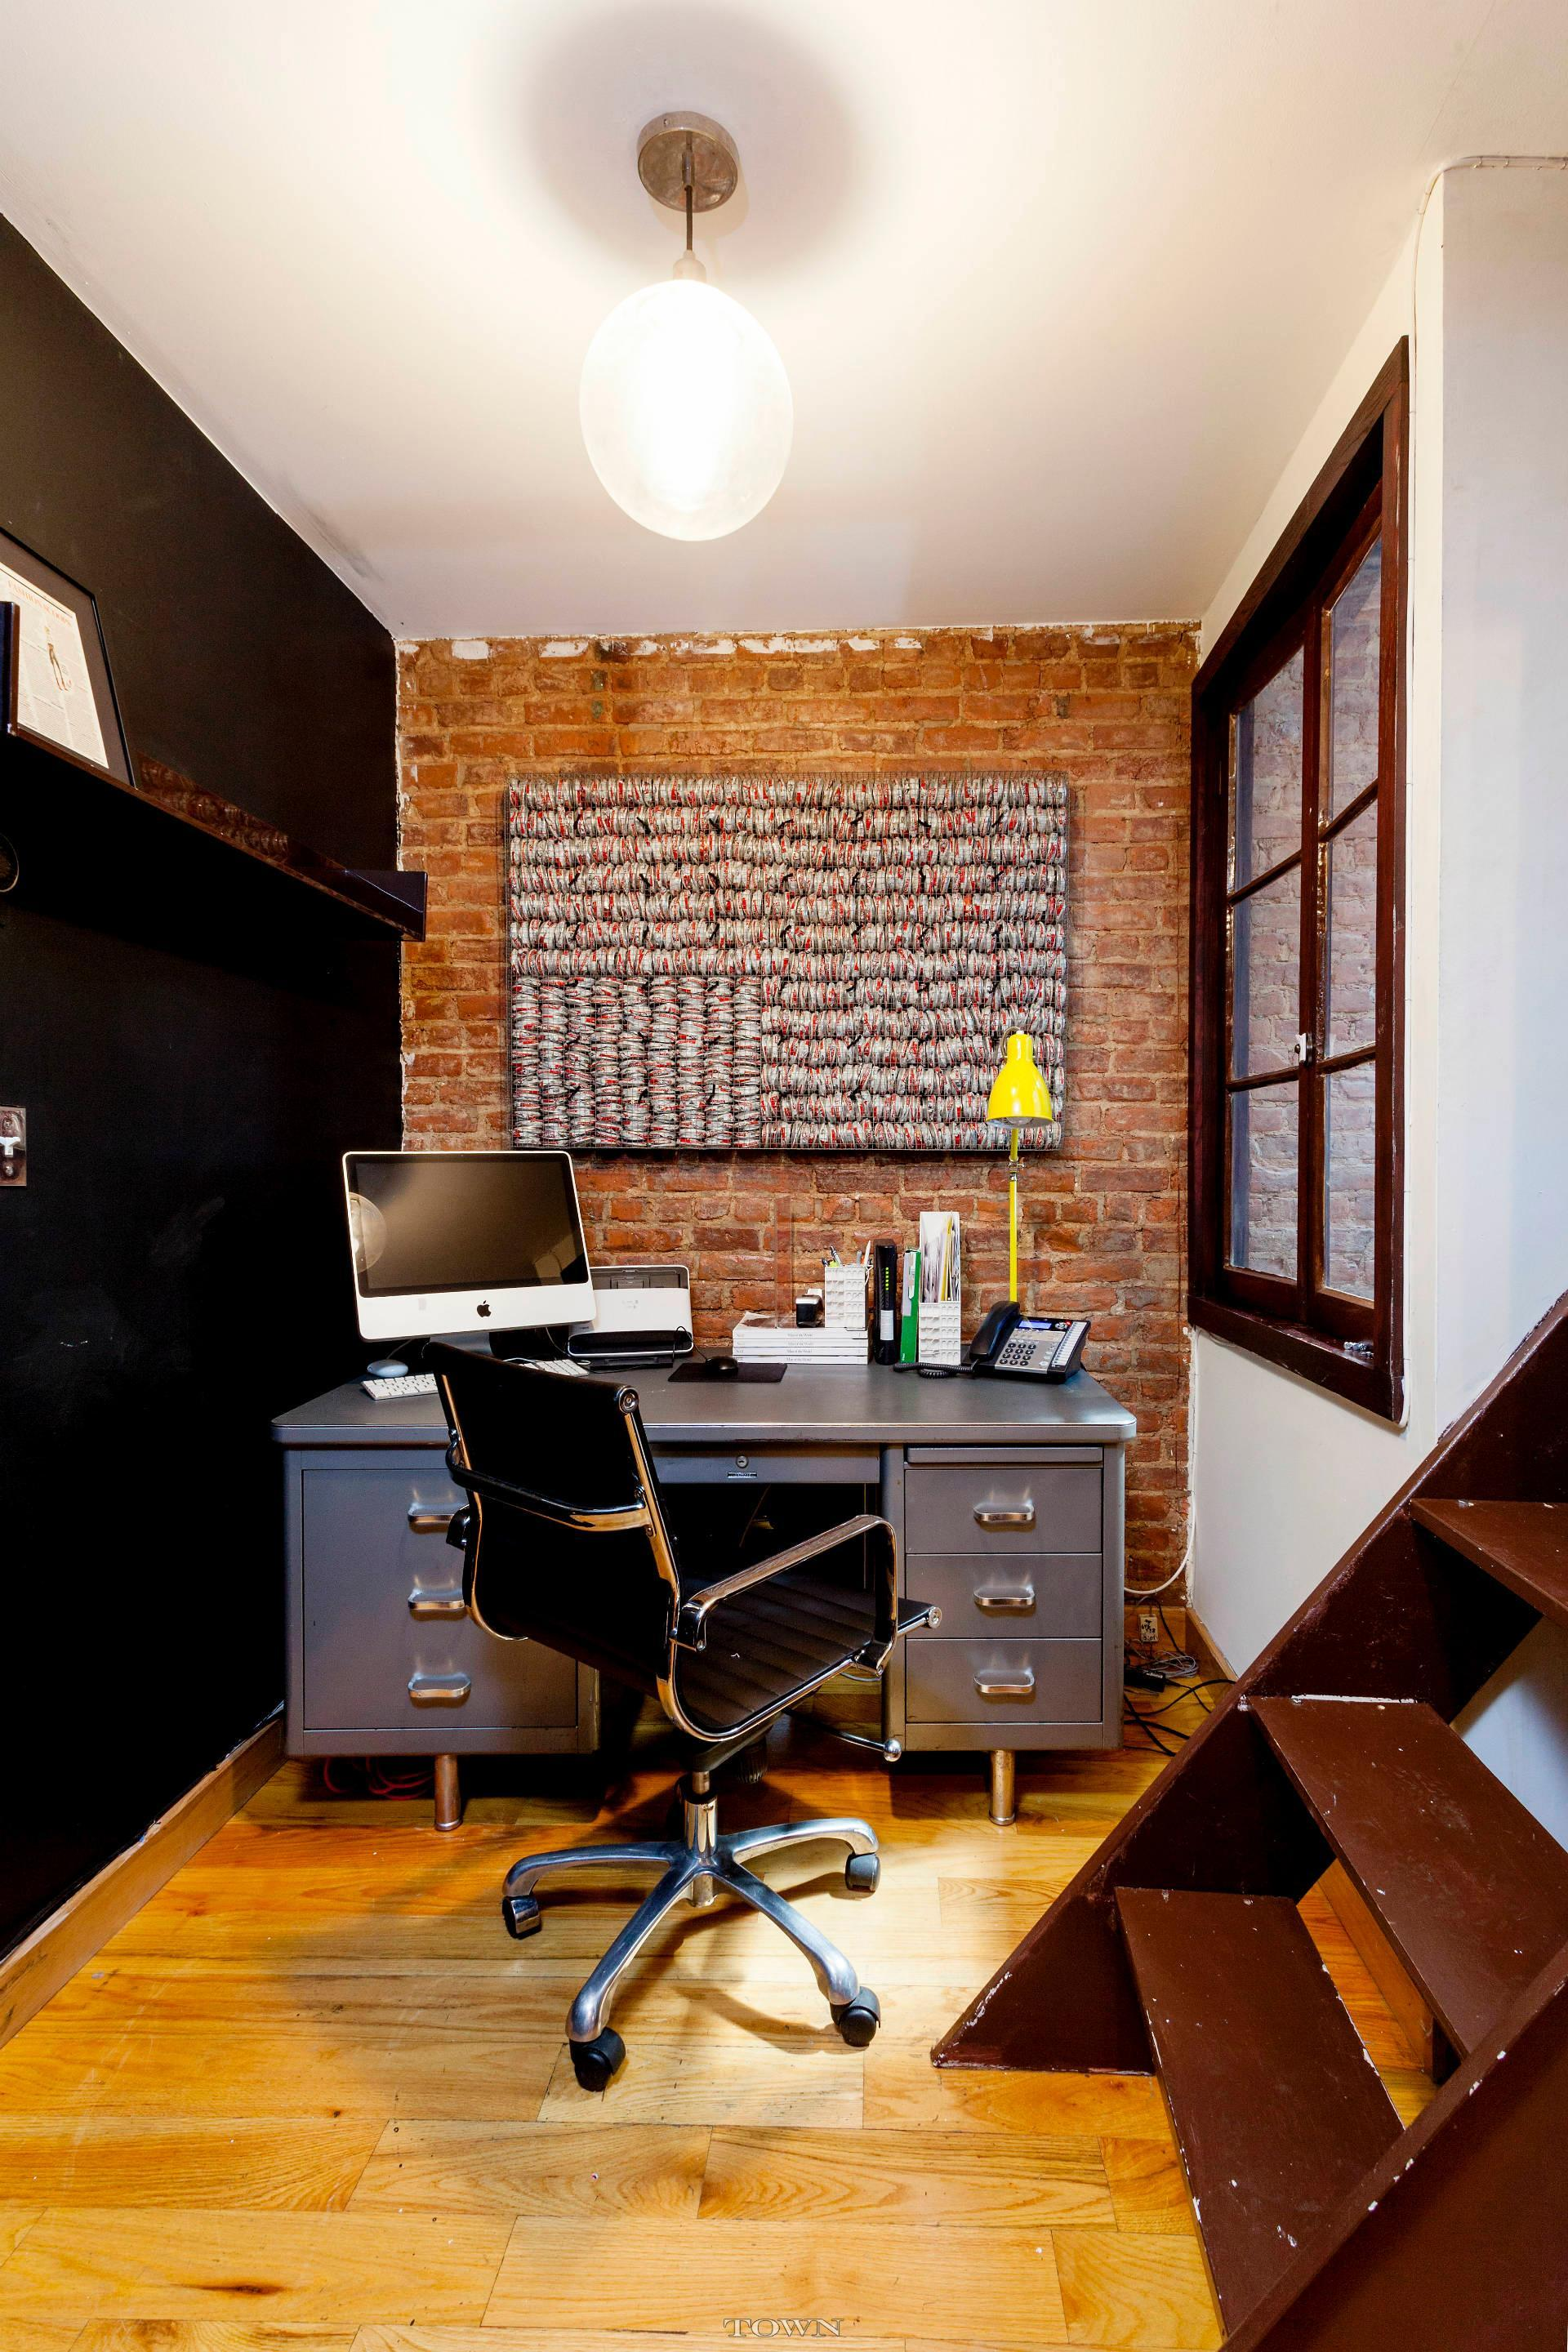 529 9th avenue, office, hell's kitchen